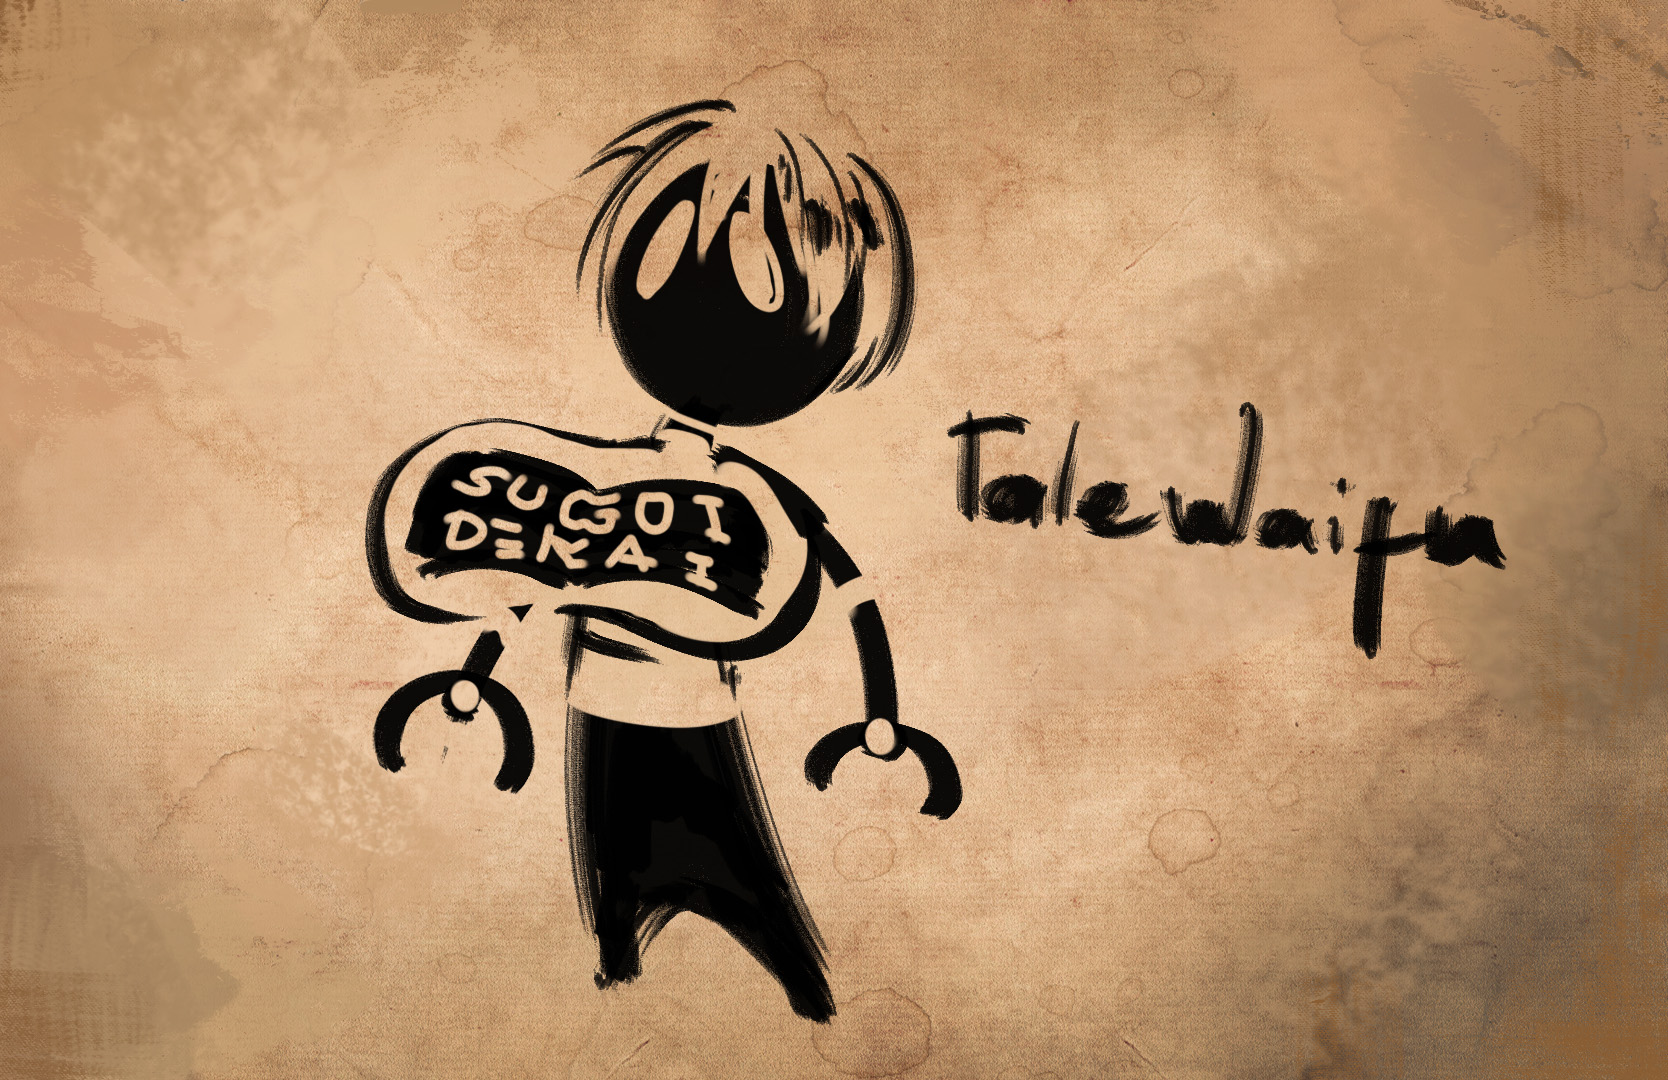 FelipeDeBarros — Waifu Taleoid (requested live on stream)